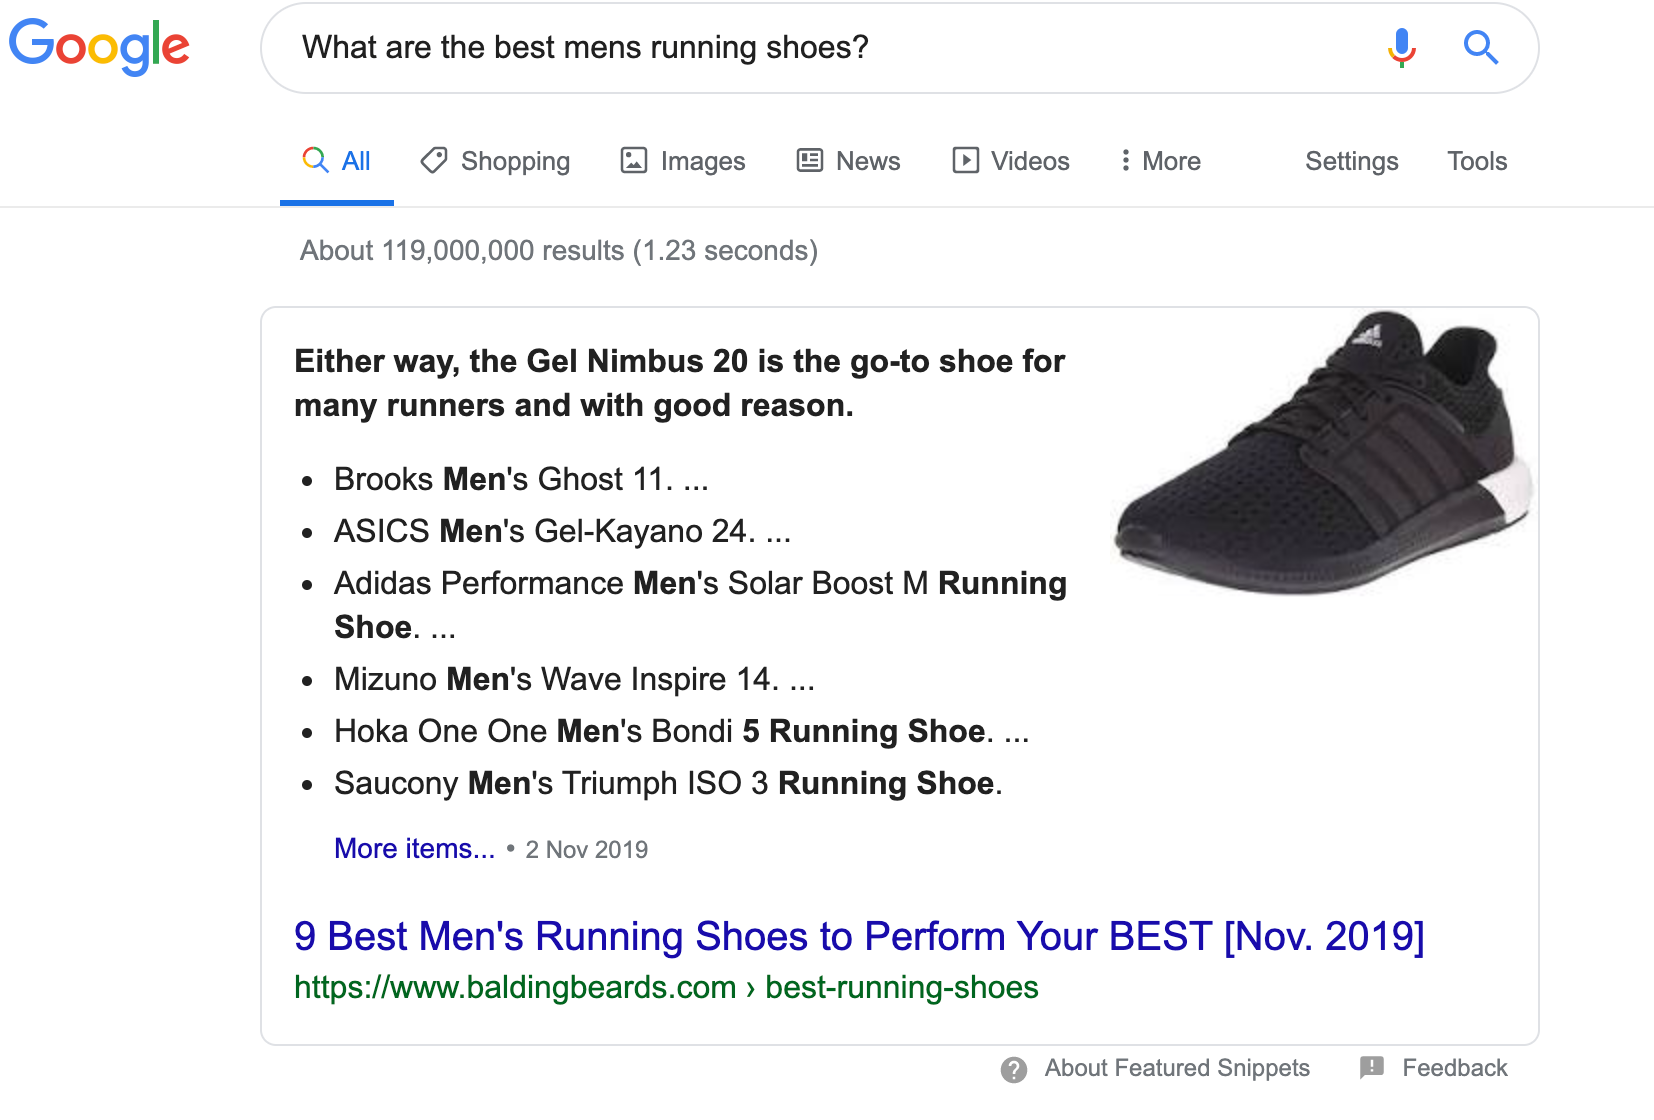 'People also ask' as a featured snippet